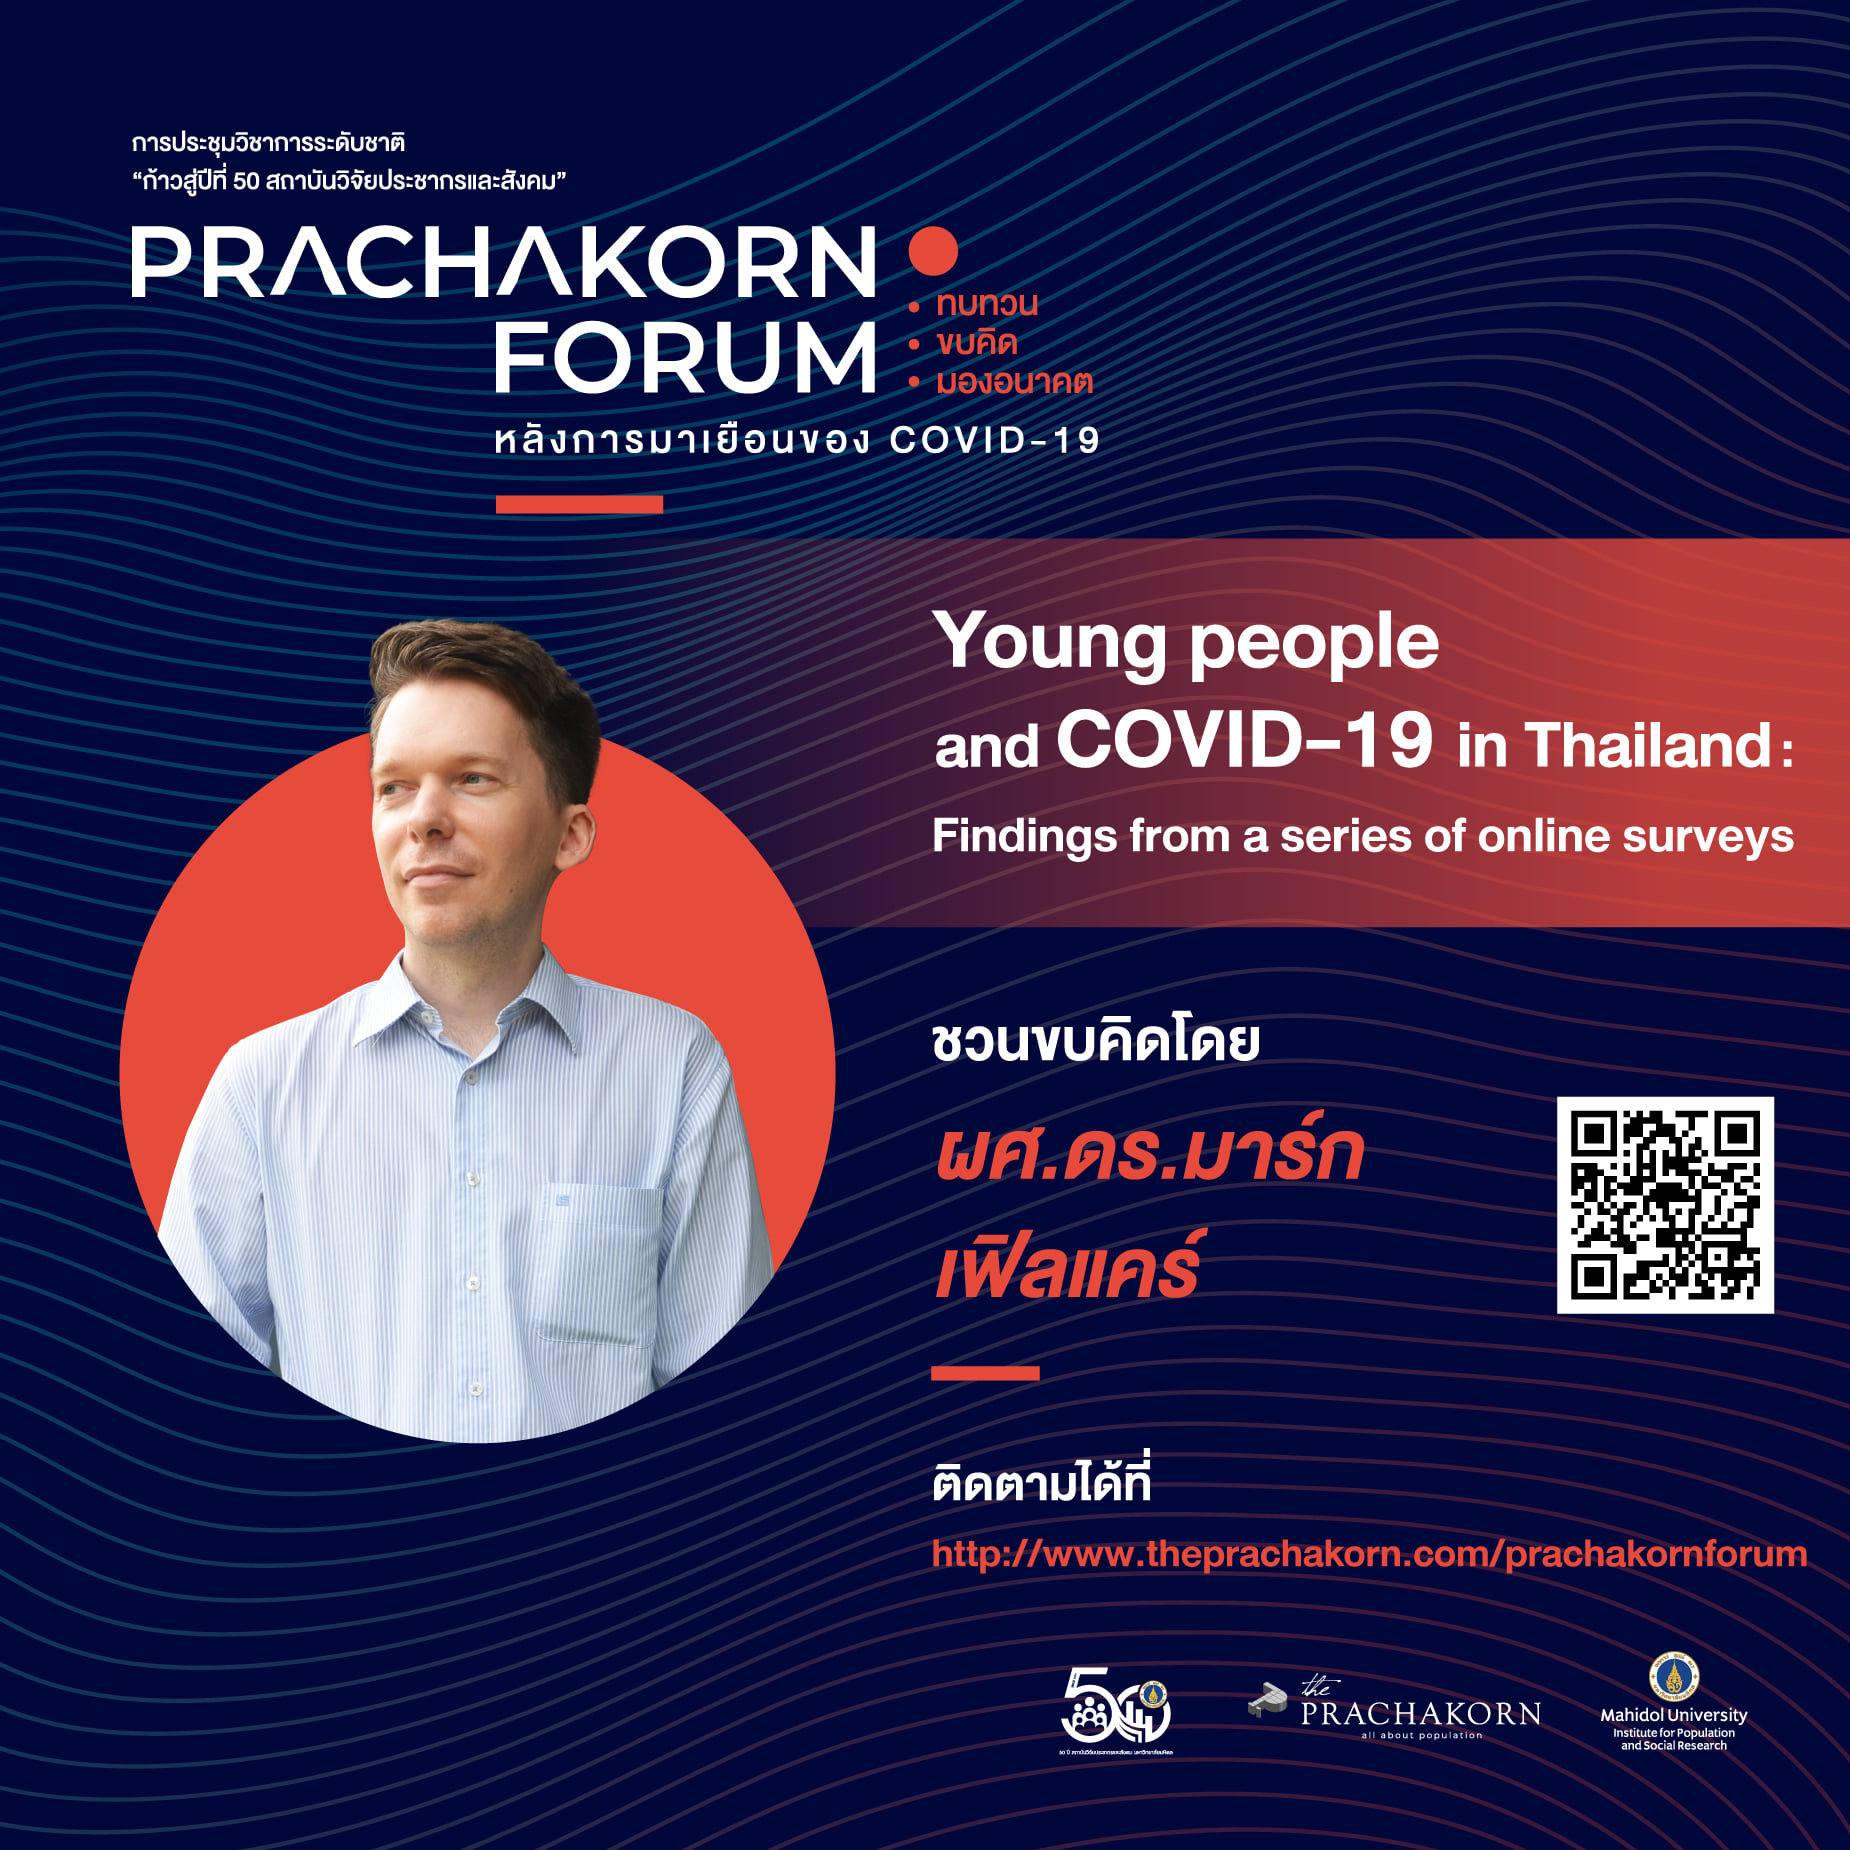 Prachakorn Forum EP.3 | Young People and COVID-19 in Thailand: Findings from a Series of Online Surveys